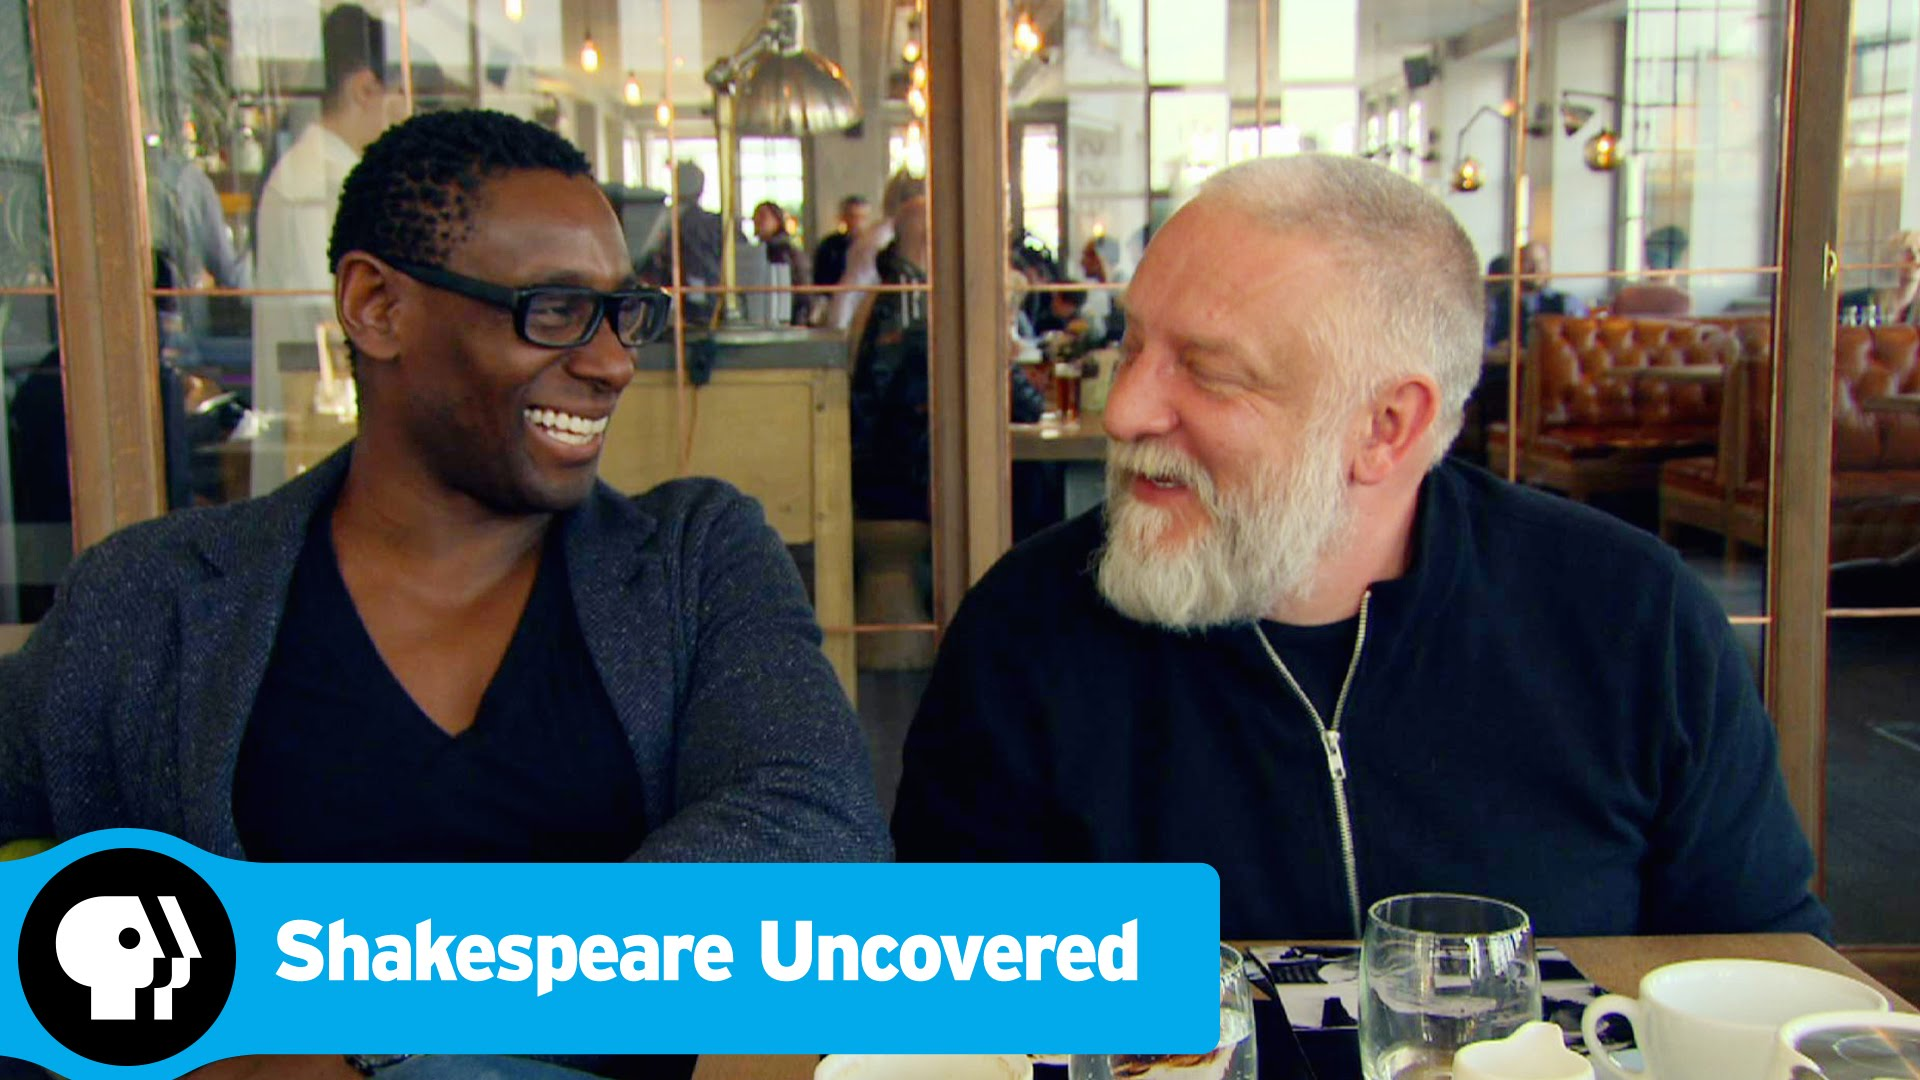 shakespeare uncovered still